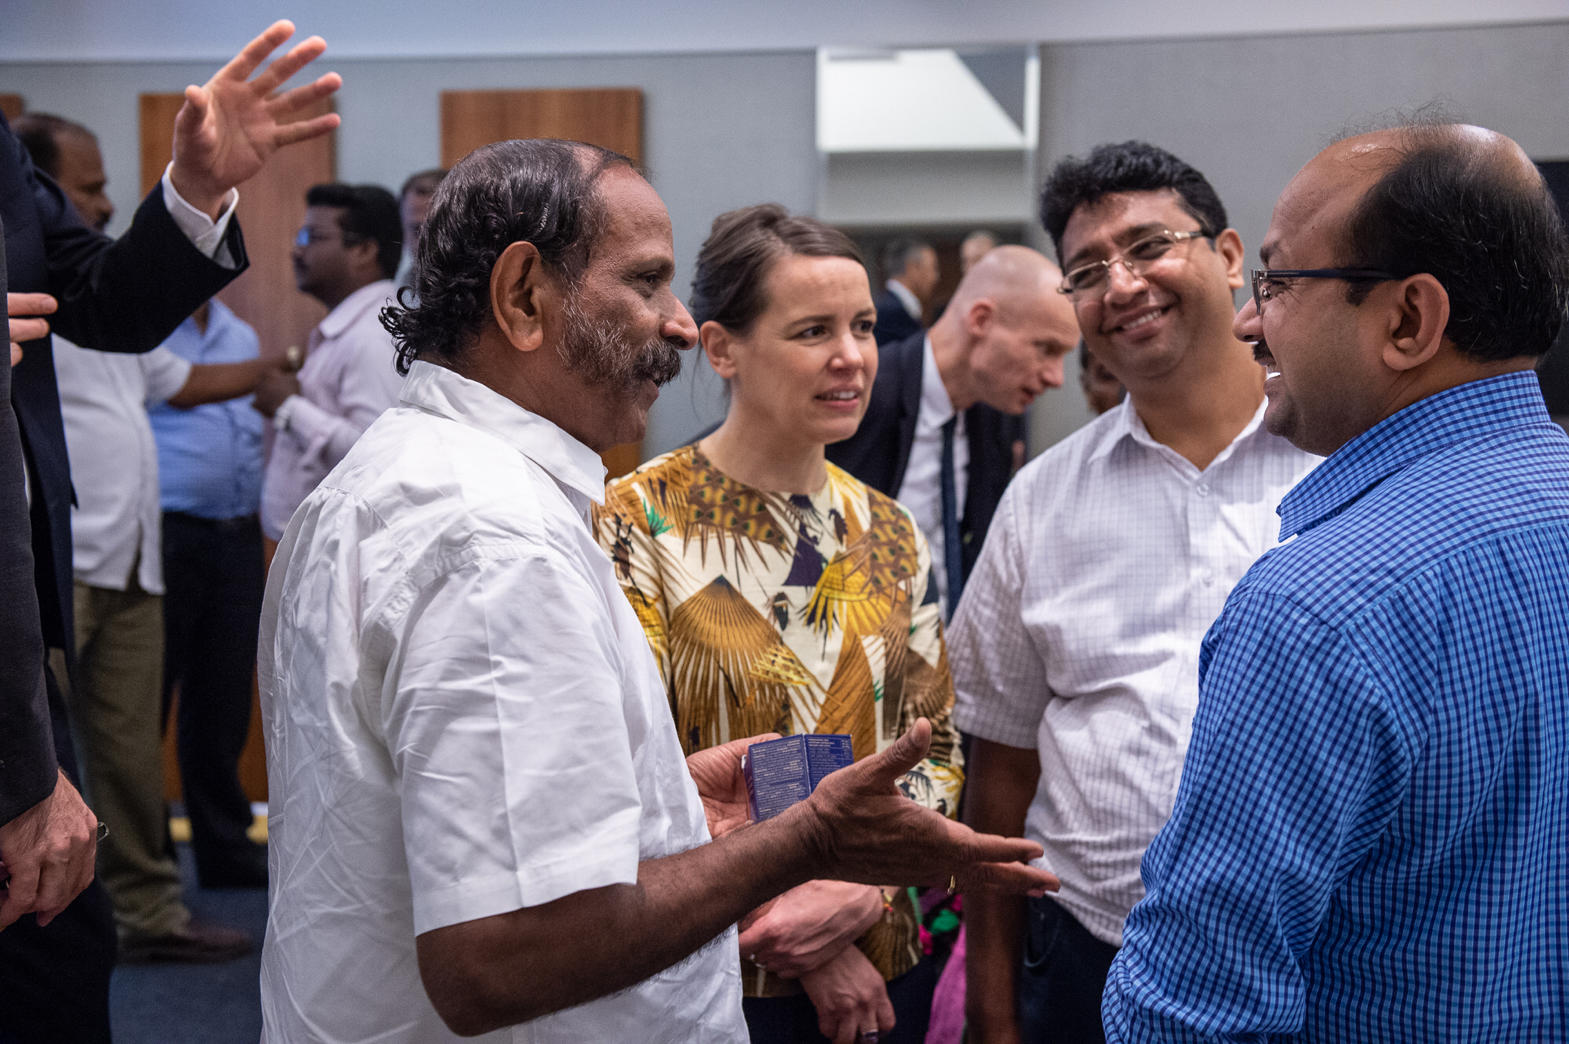 (from left) MLA Mylapore Dr. R. Nataraj, Eva Pfannes from Ooze Architects, Sudheendra N.K. from Madras Terrace and Prof. Balaji Narasimhan from IIT Madras in conversation during the third local workshop in Chennai ©CynthiavanElk/WaterasLeverage